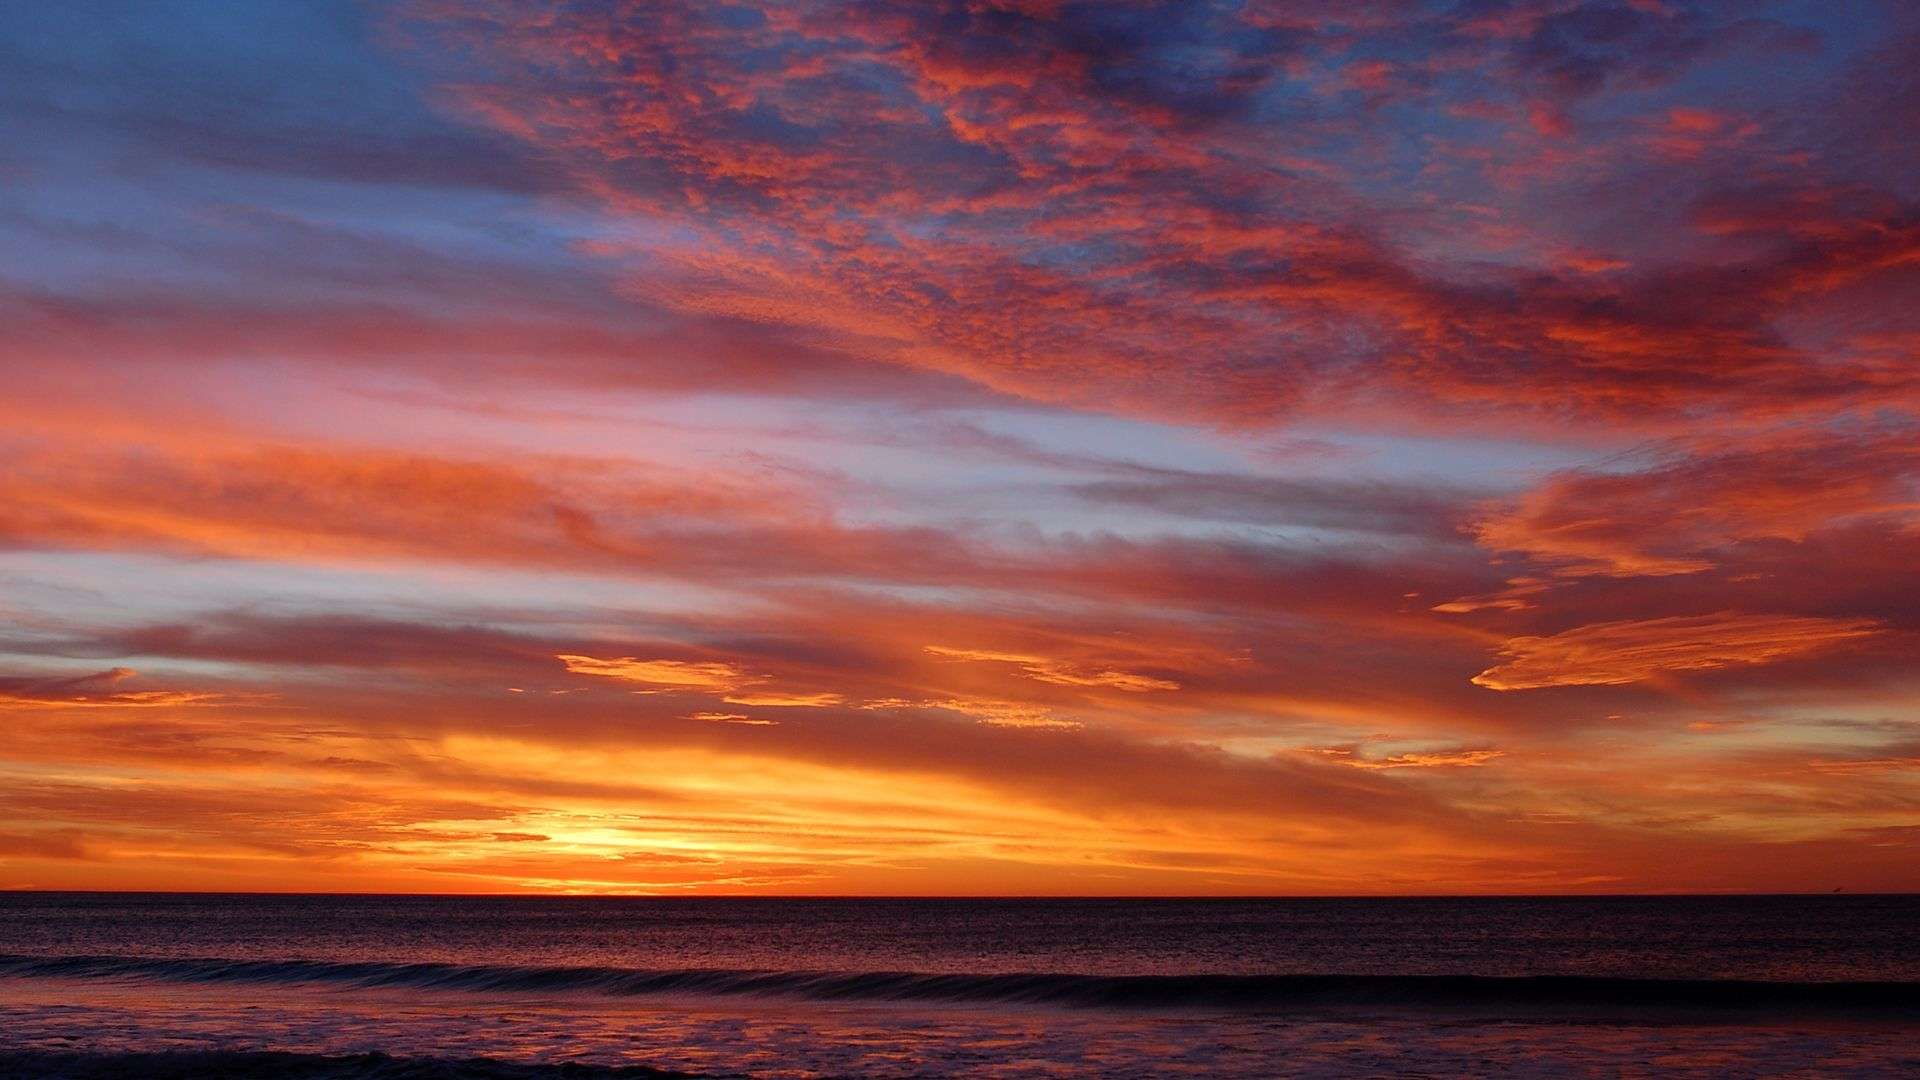 Ocean Sunset Wallpaper 35974 1920x1080 px HDWallSourcecom 1920x1080